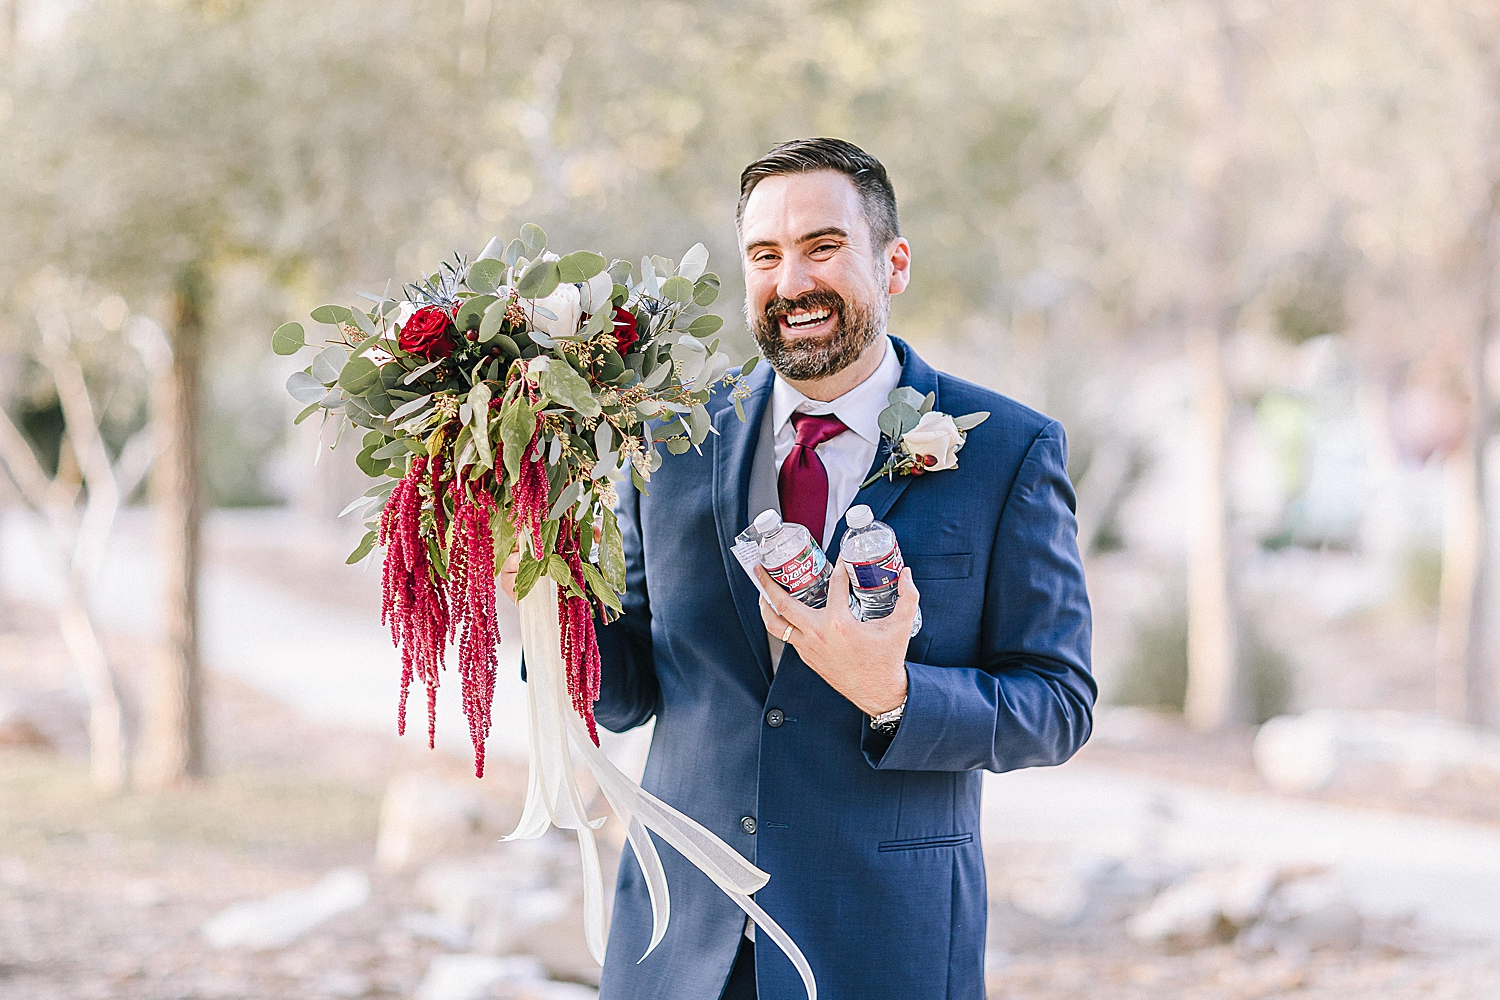 Geronimo-Oaks-Wedding-Venue-Seguin-Texas-Elegant-Navy-Burgundy-Wedding-Carly-Barton-Photography_0038.jpg